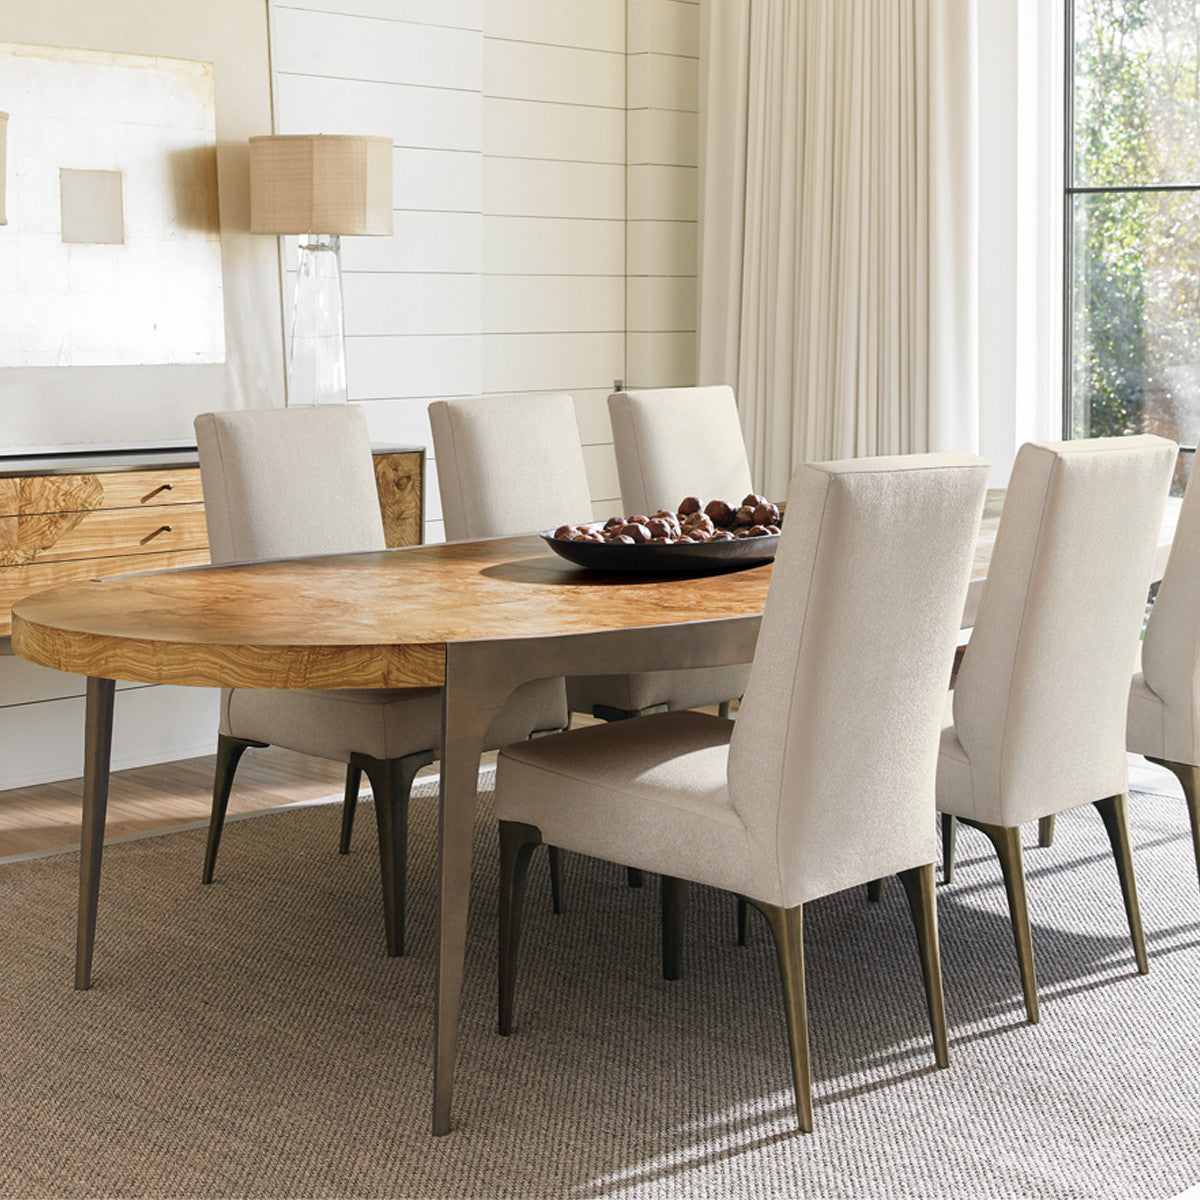 TORRANCE OVAL EXTENSION DINING TABLE - Torrance dining table